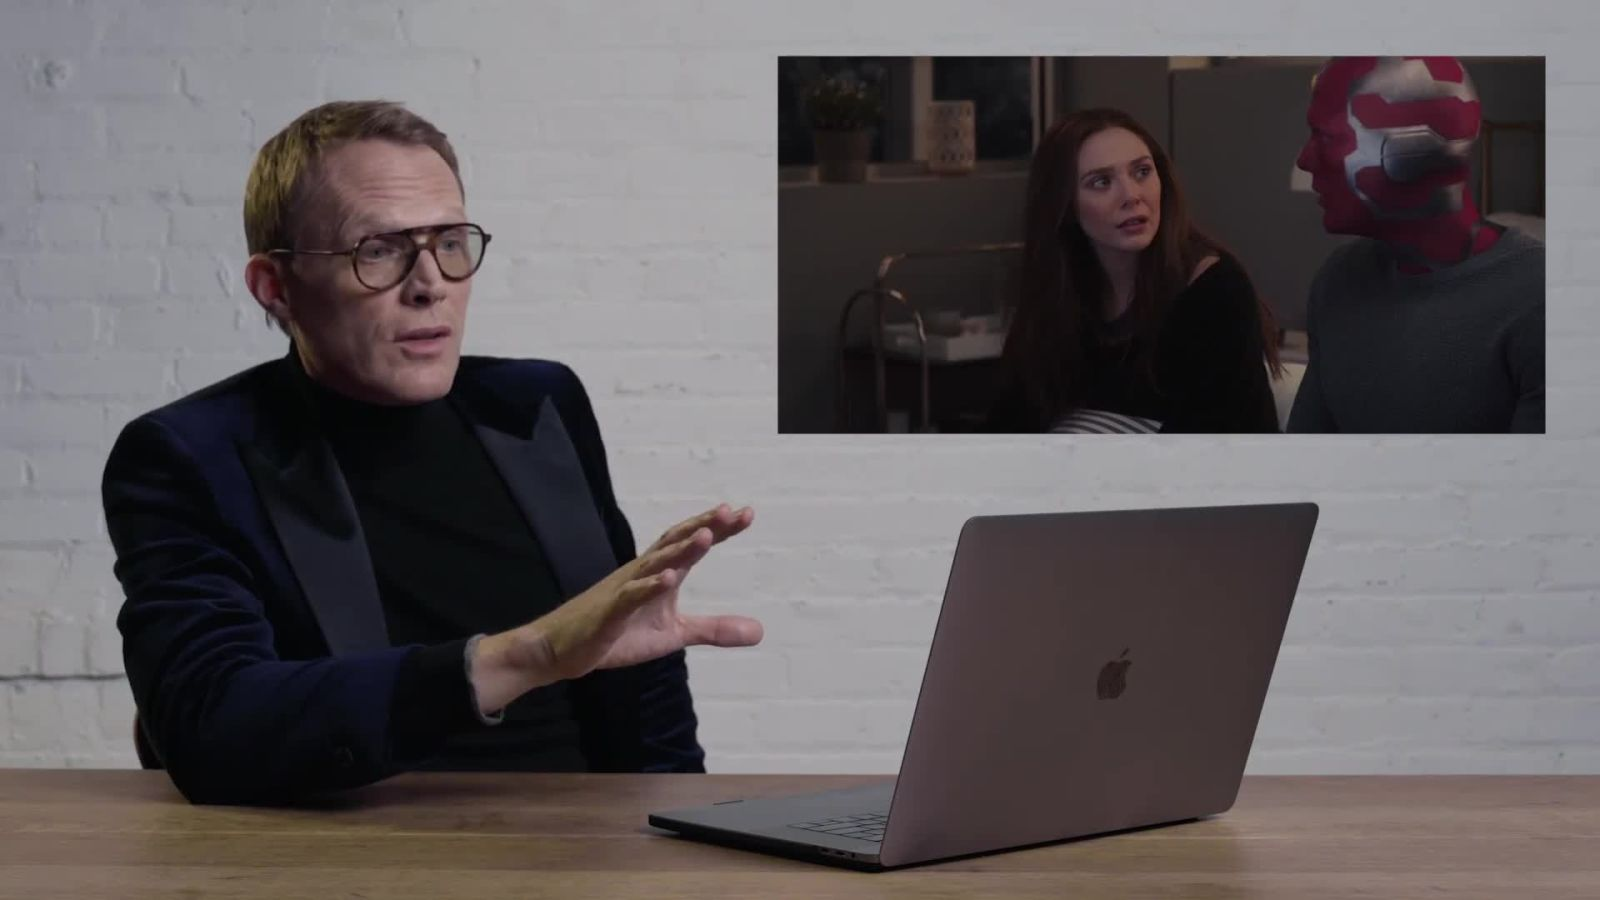 Paul Bettany Reacts to Marvel's WandaVision Scenes | Action Replay | British GQ